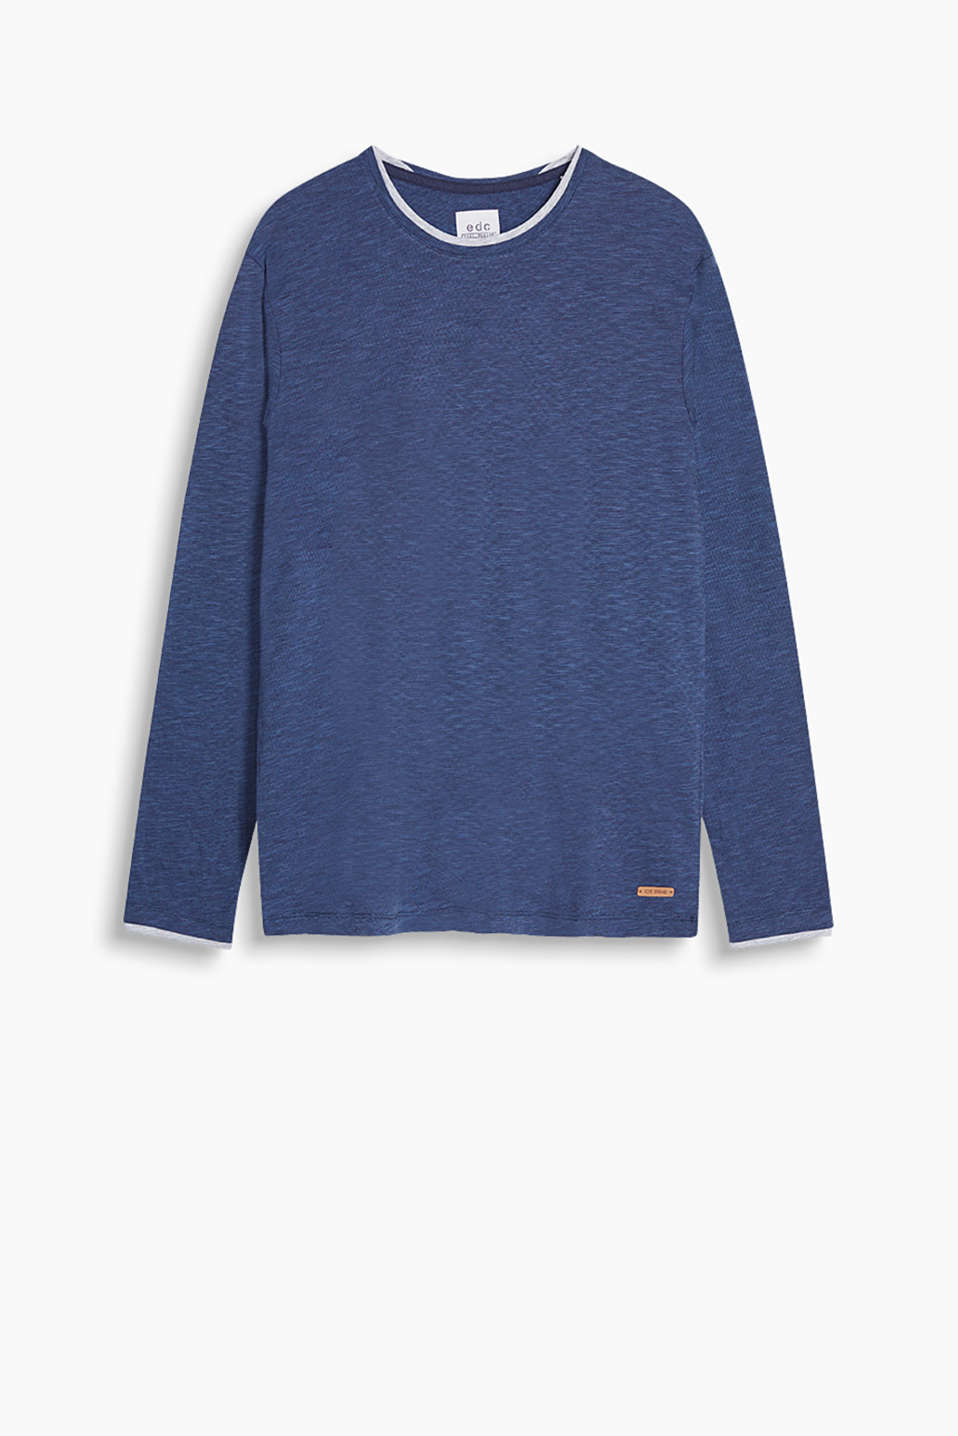 Melange long sleeve top in a layered look, made of 100% cotton